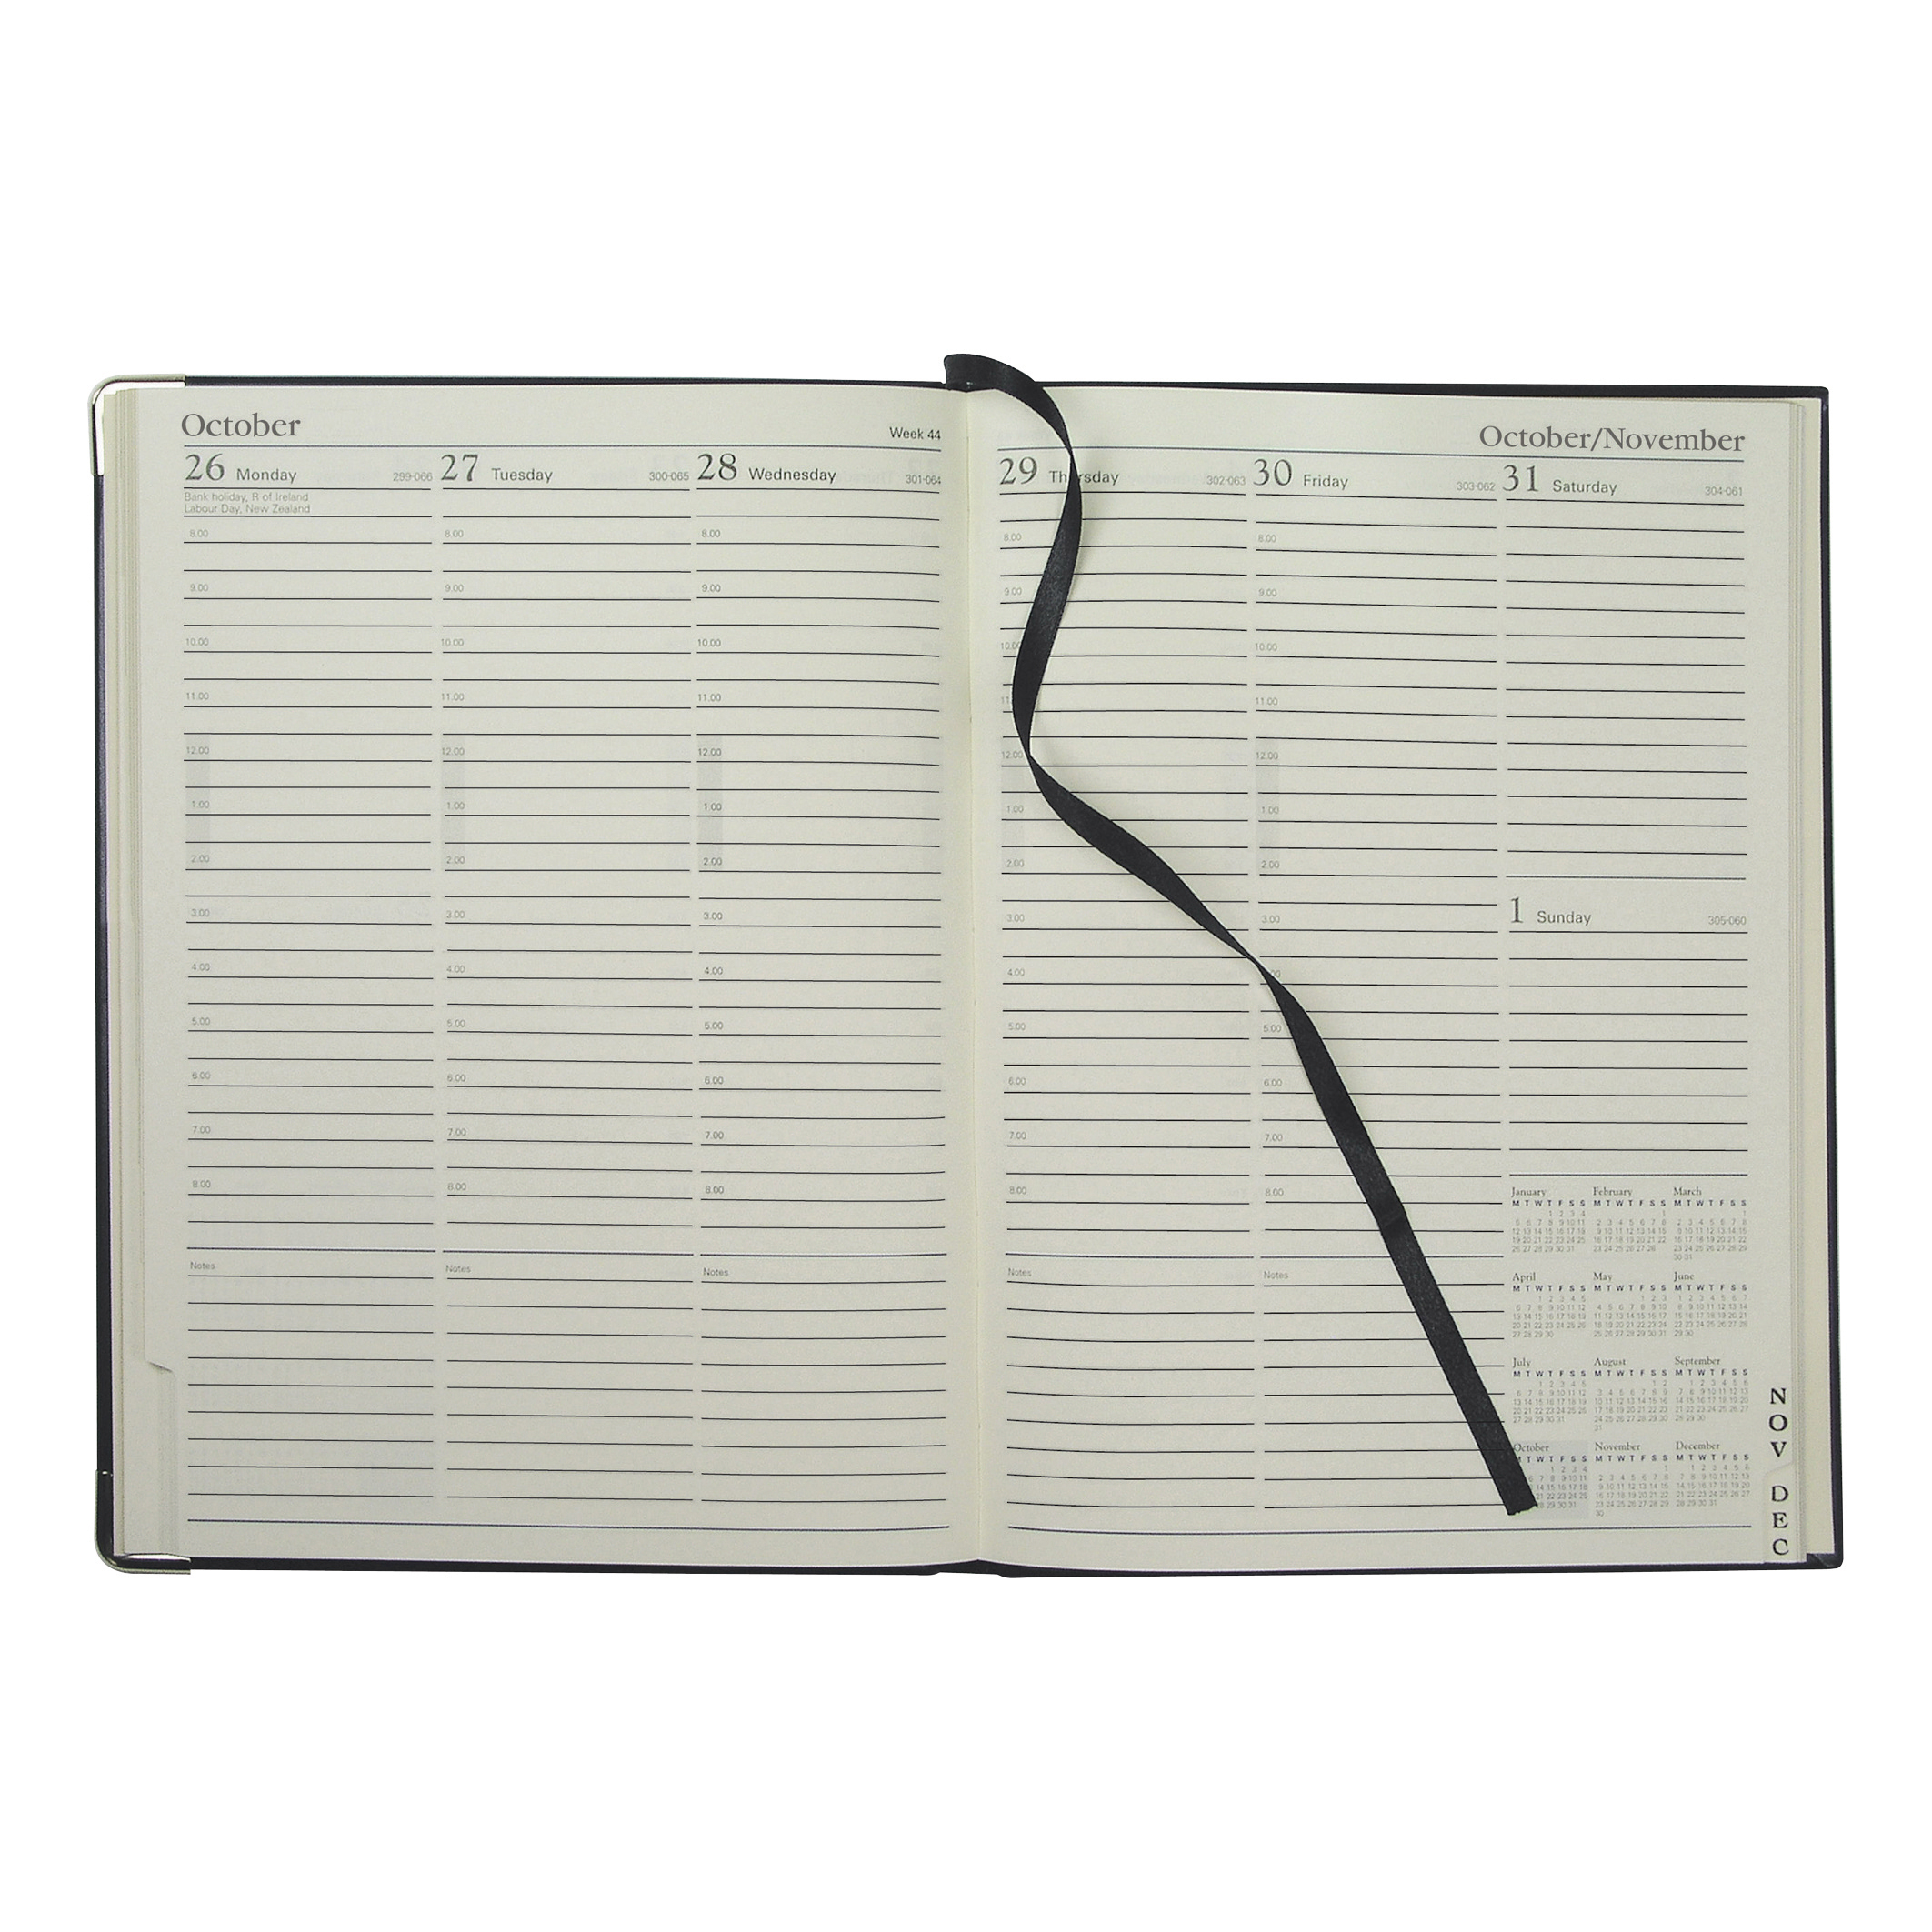 Collins 2019 Classic Compact Diary Week to View Sewn Binding 190x260mm Black Ref 1210V 2019